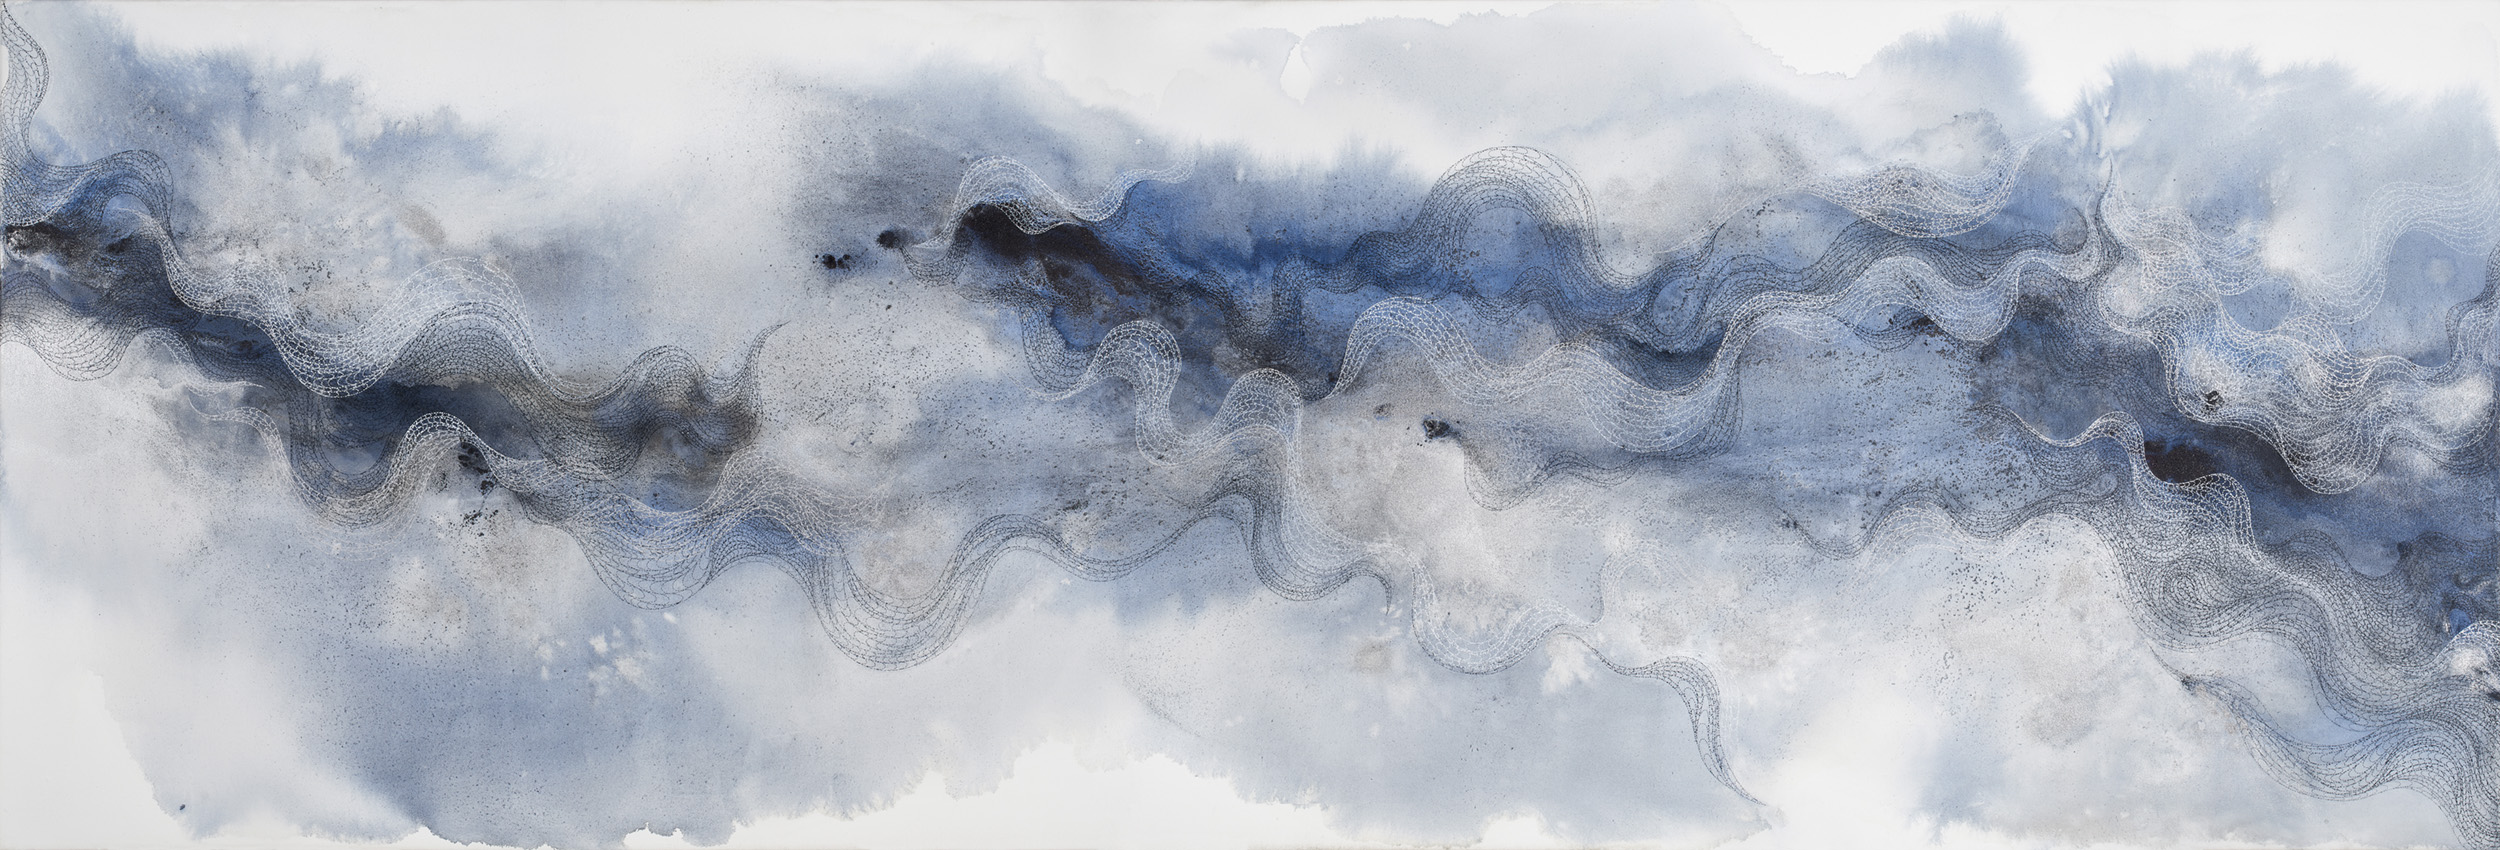 Cascade 05, ink, powder pigment on canvas, 89x30 in., 2018